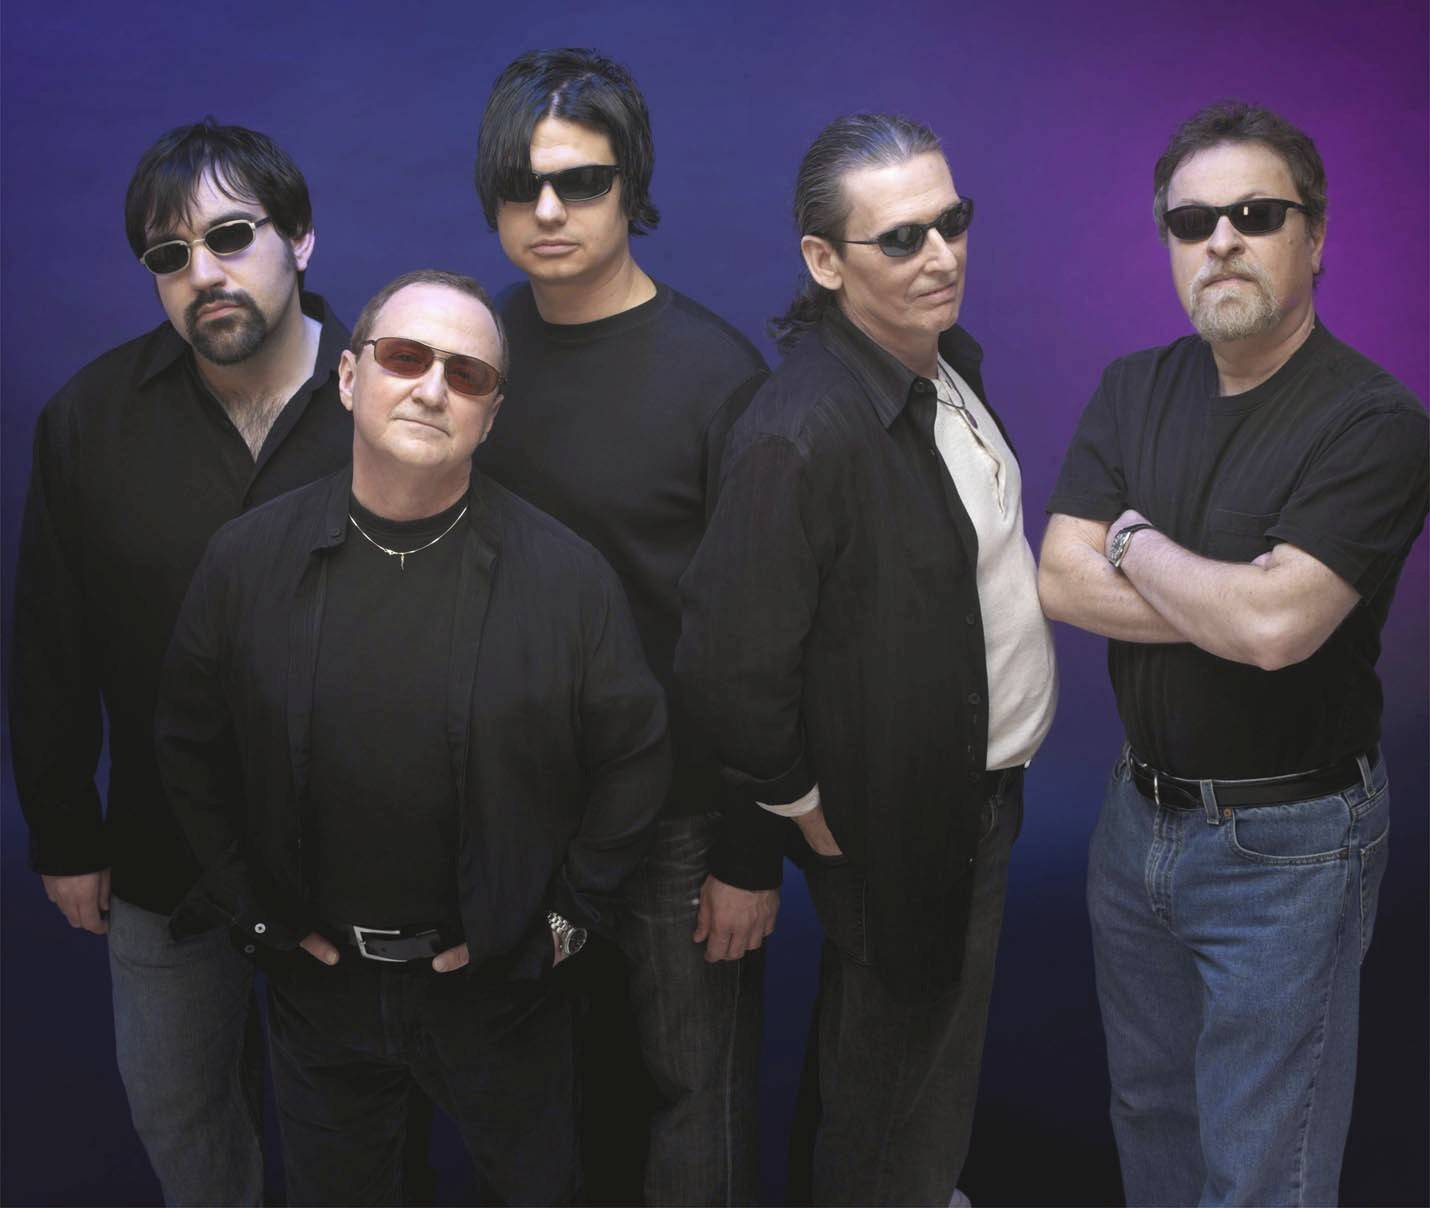 Rock group Blue Oyster Cult plays at the Arcada Theatre in St. Charles at 8 p.m. Saturday, May 17.